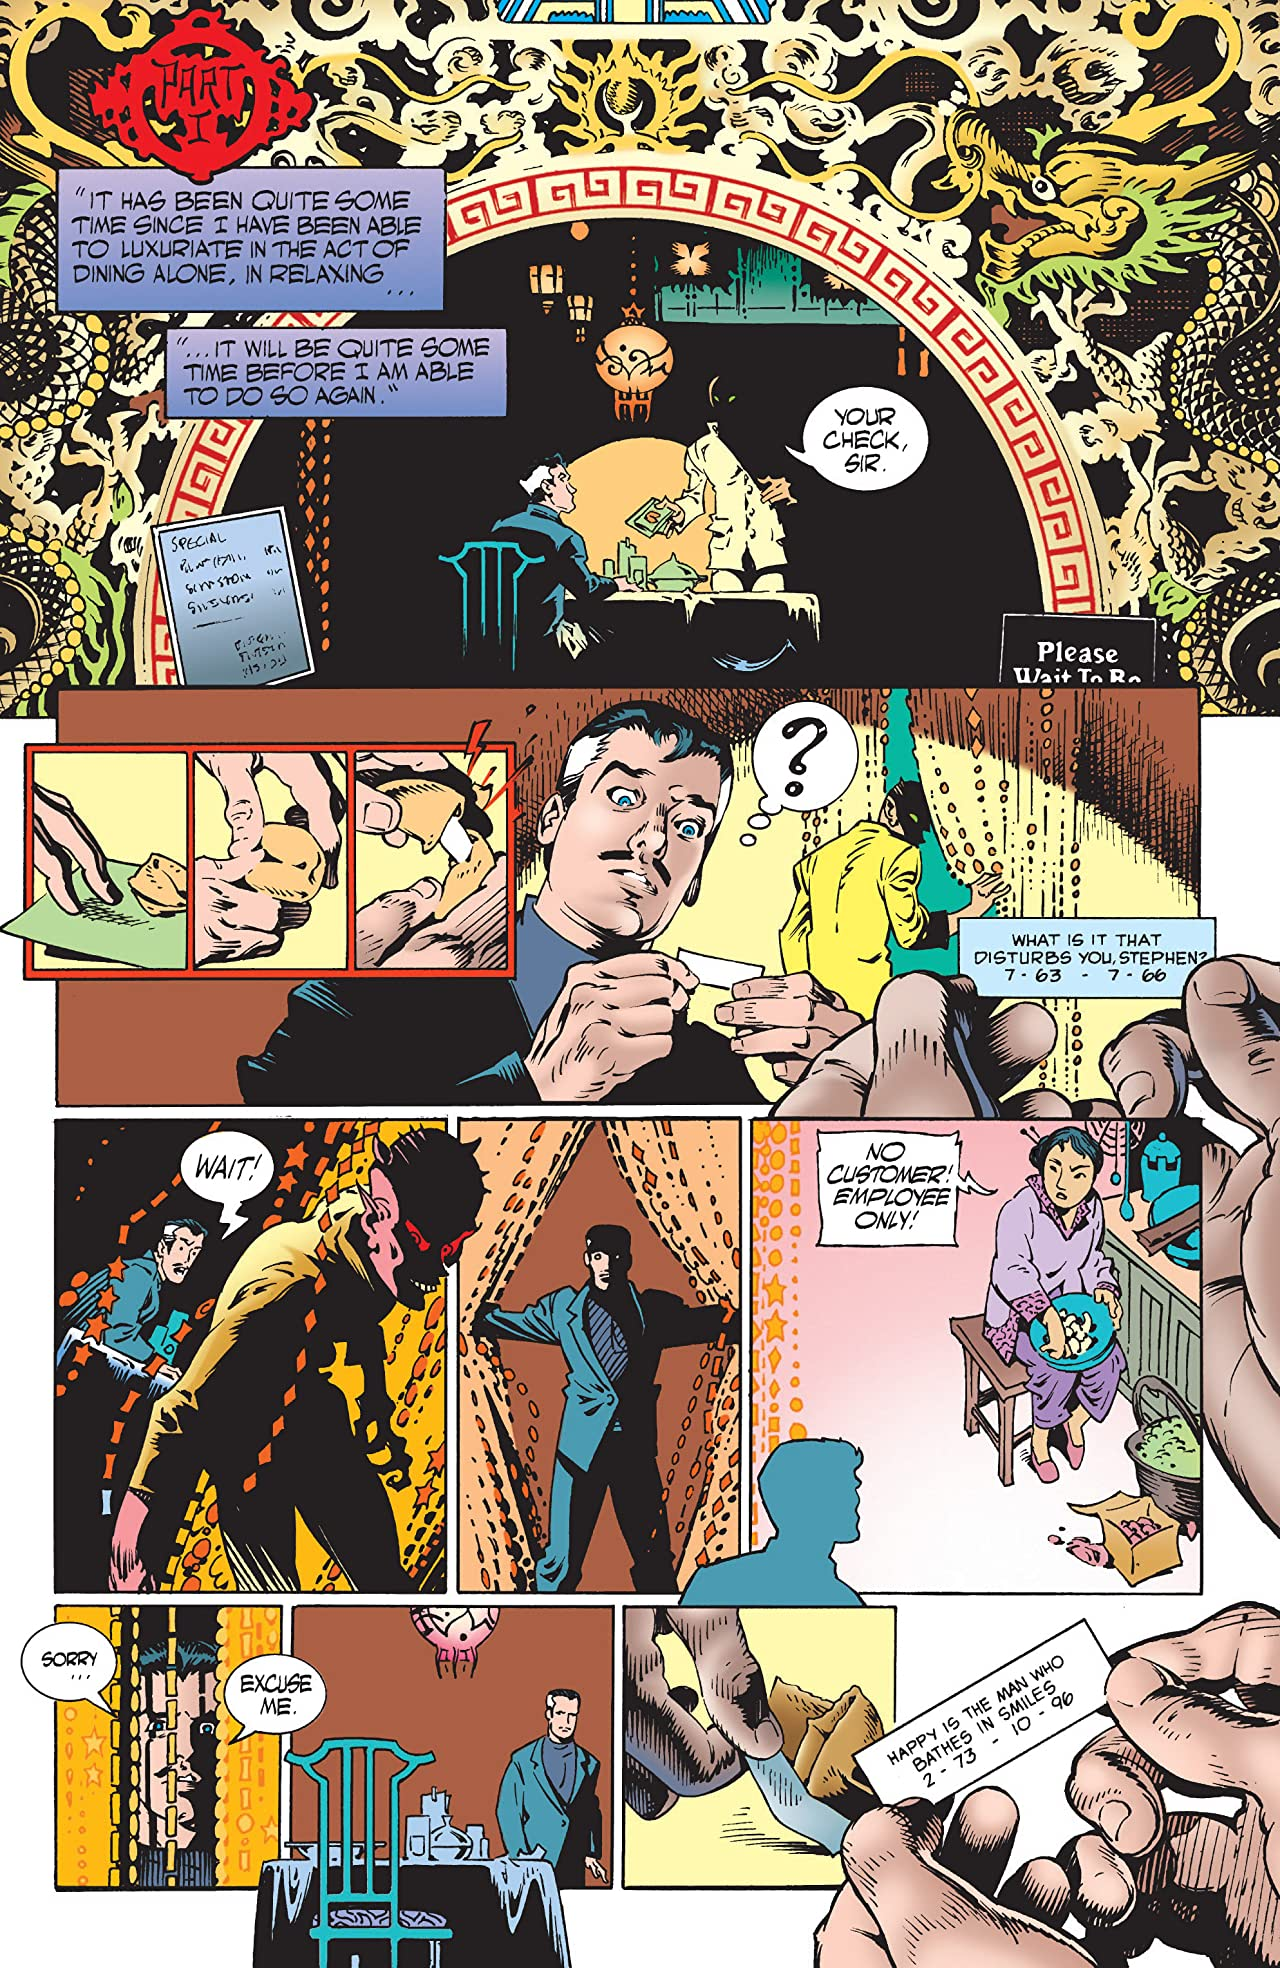 Dr. Strange: What Is It That Disturbs You, Stephen? (1997) #1